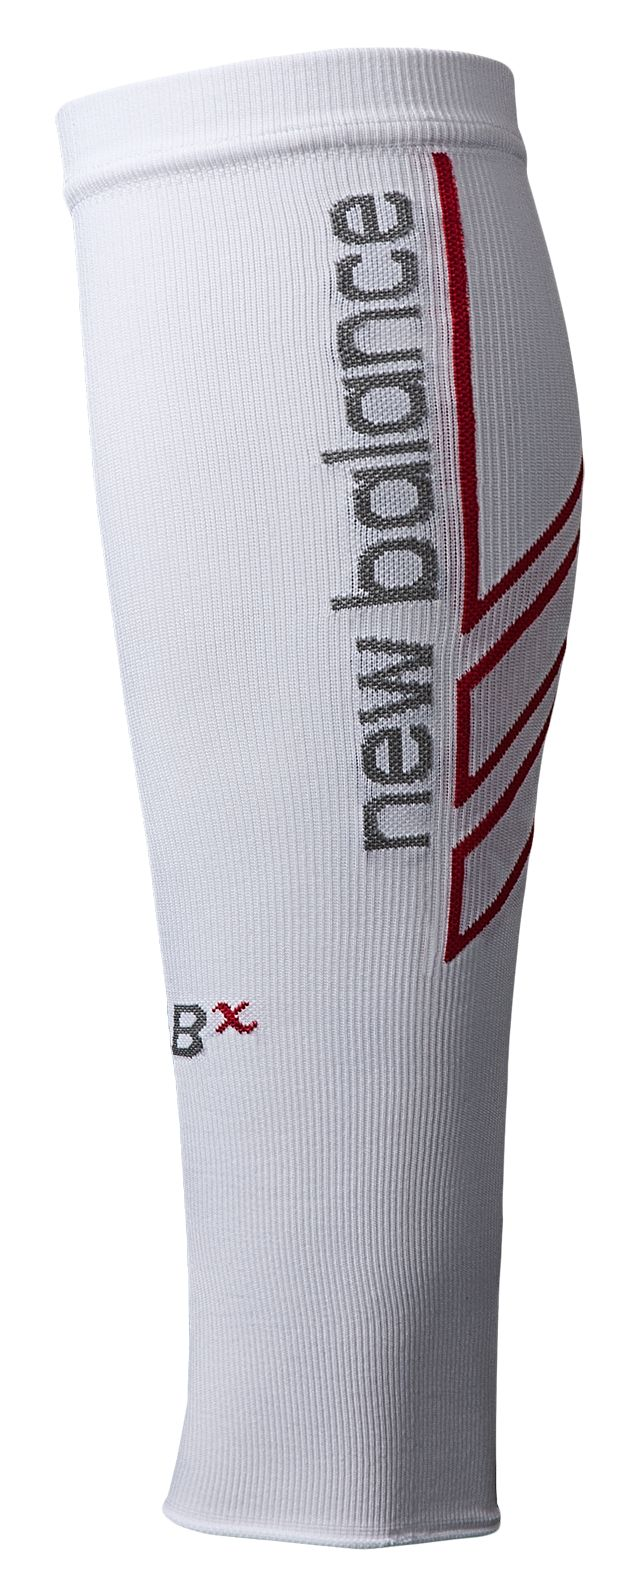 Compression Sleeve (one pair)